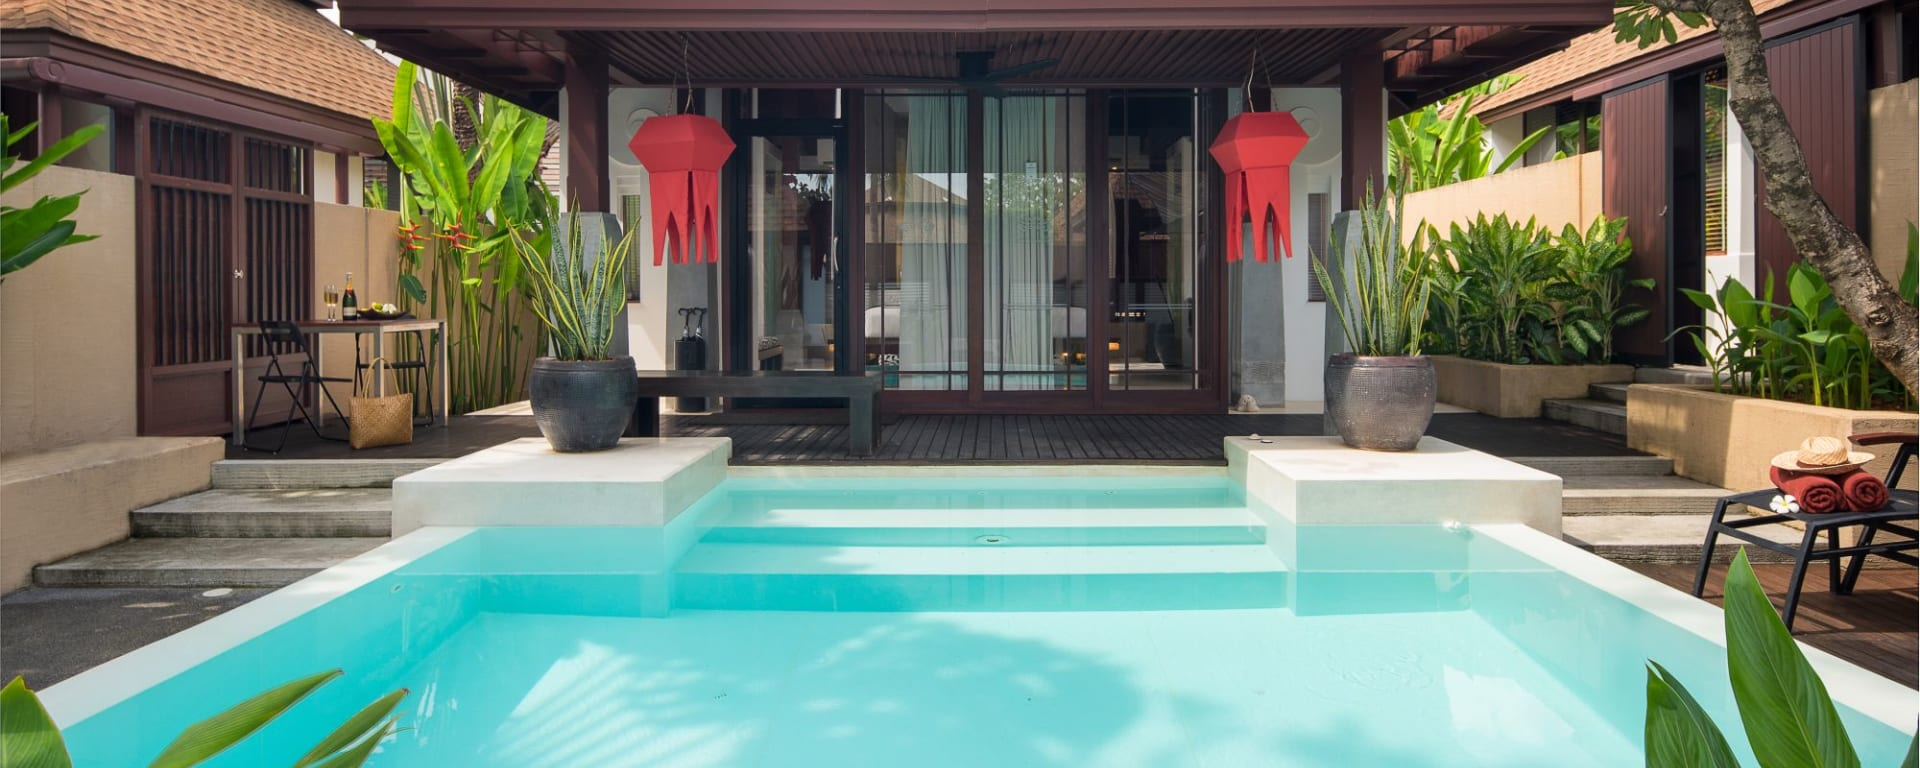 Pavilion Samui Villas & Resort in Ko Samui: Grand Pool Villa